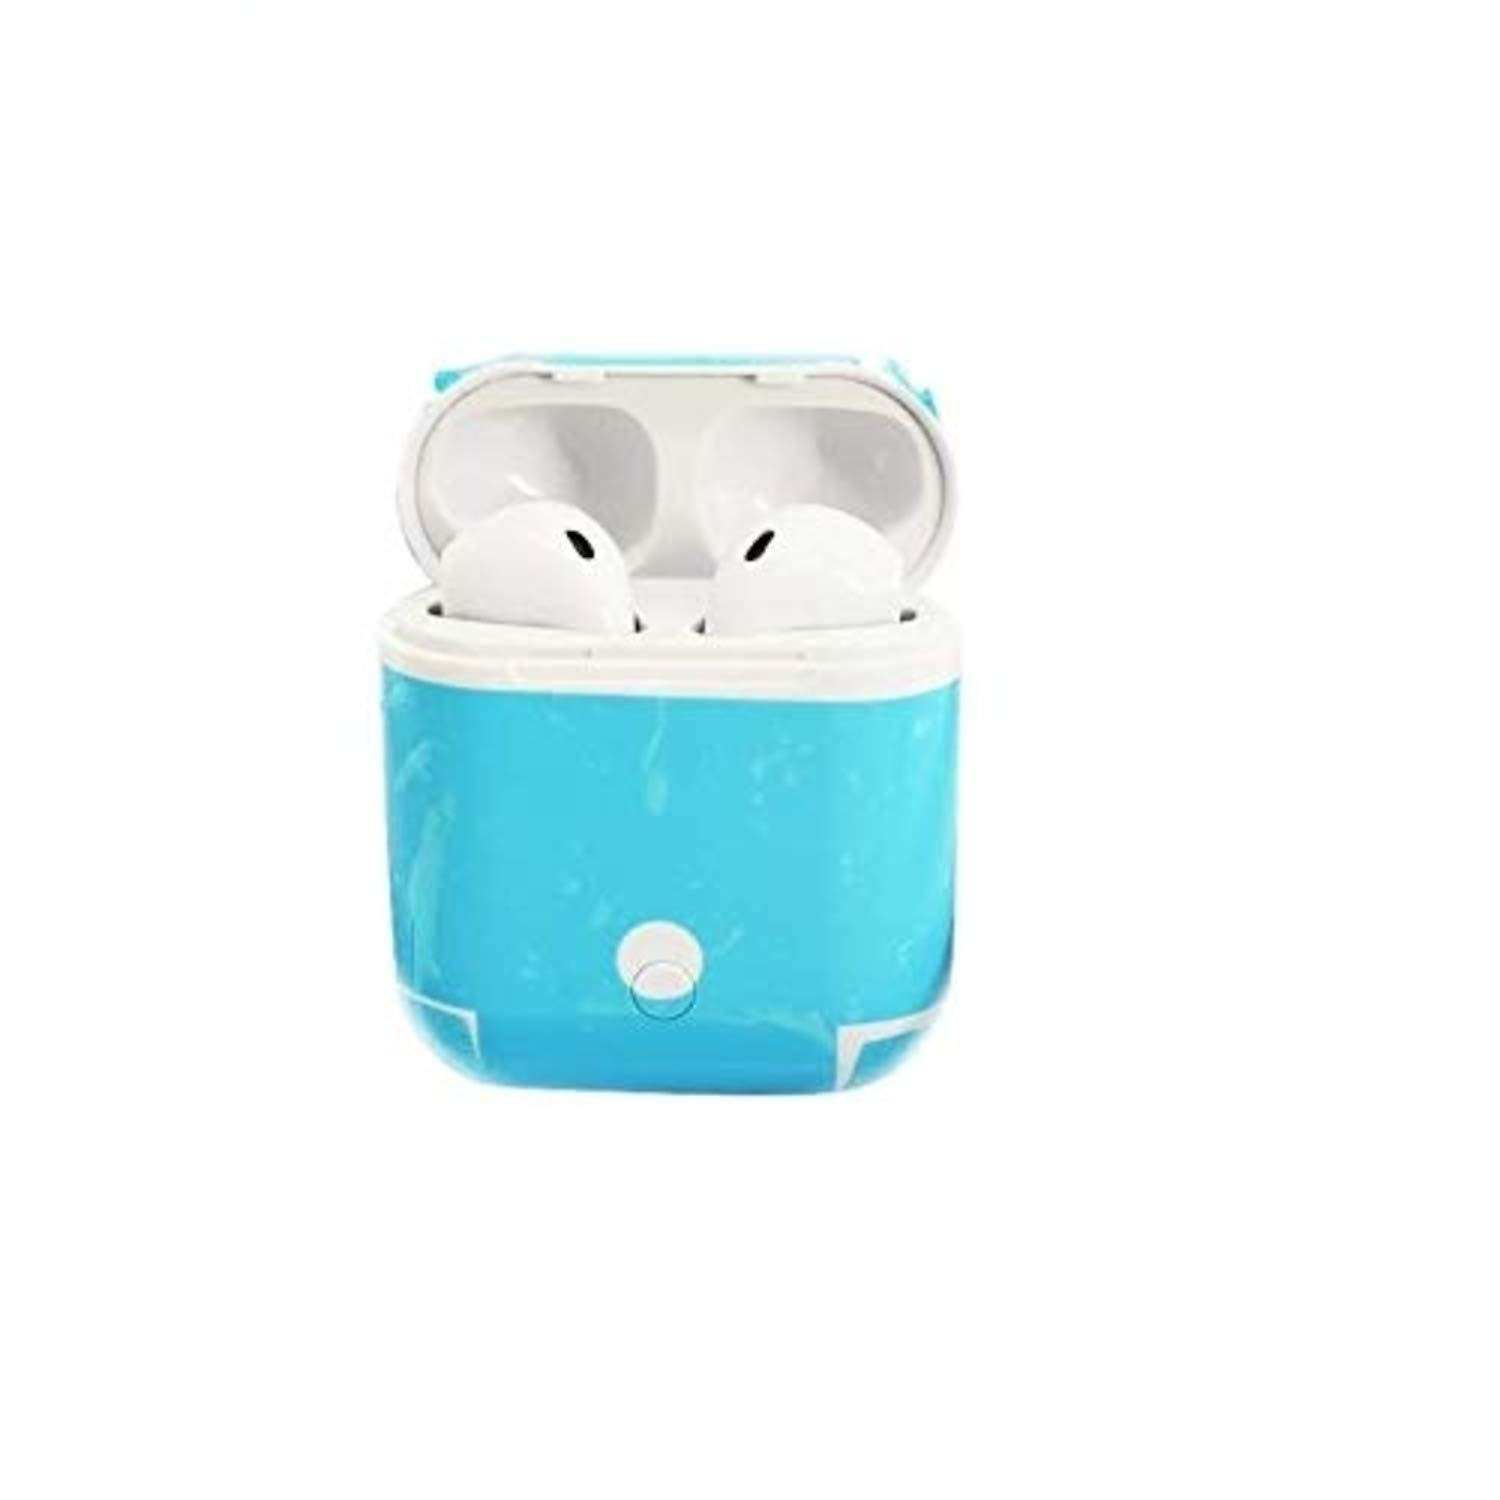 17d5c42dd55 Ello India Wireless Bluetooth i9 Sports Airpod Earphone: Amazon.in:  Electronics